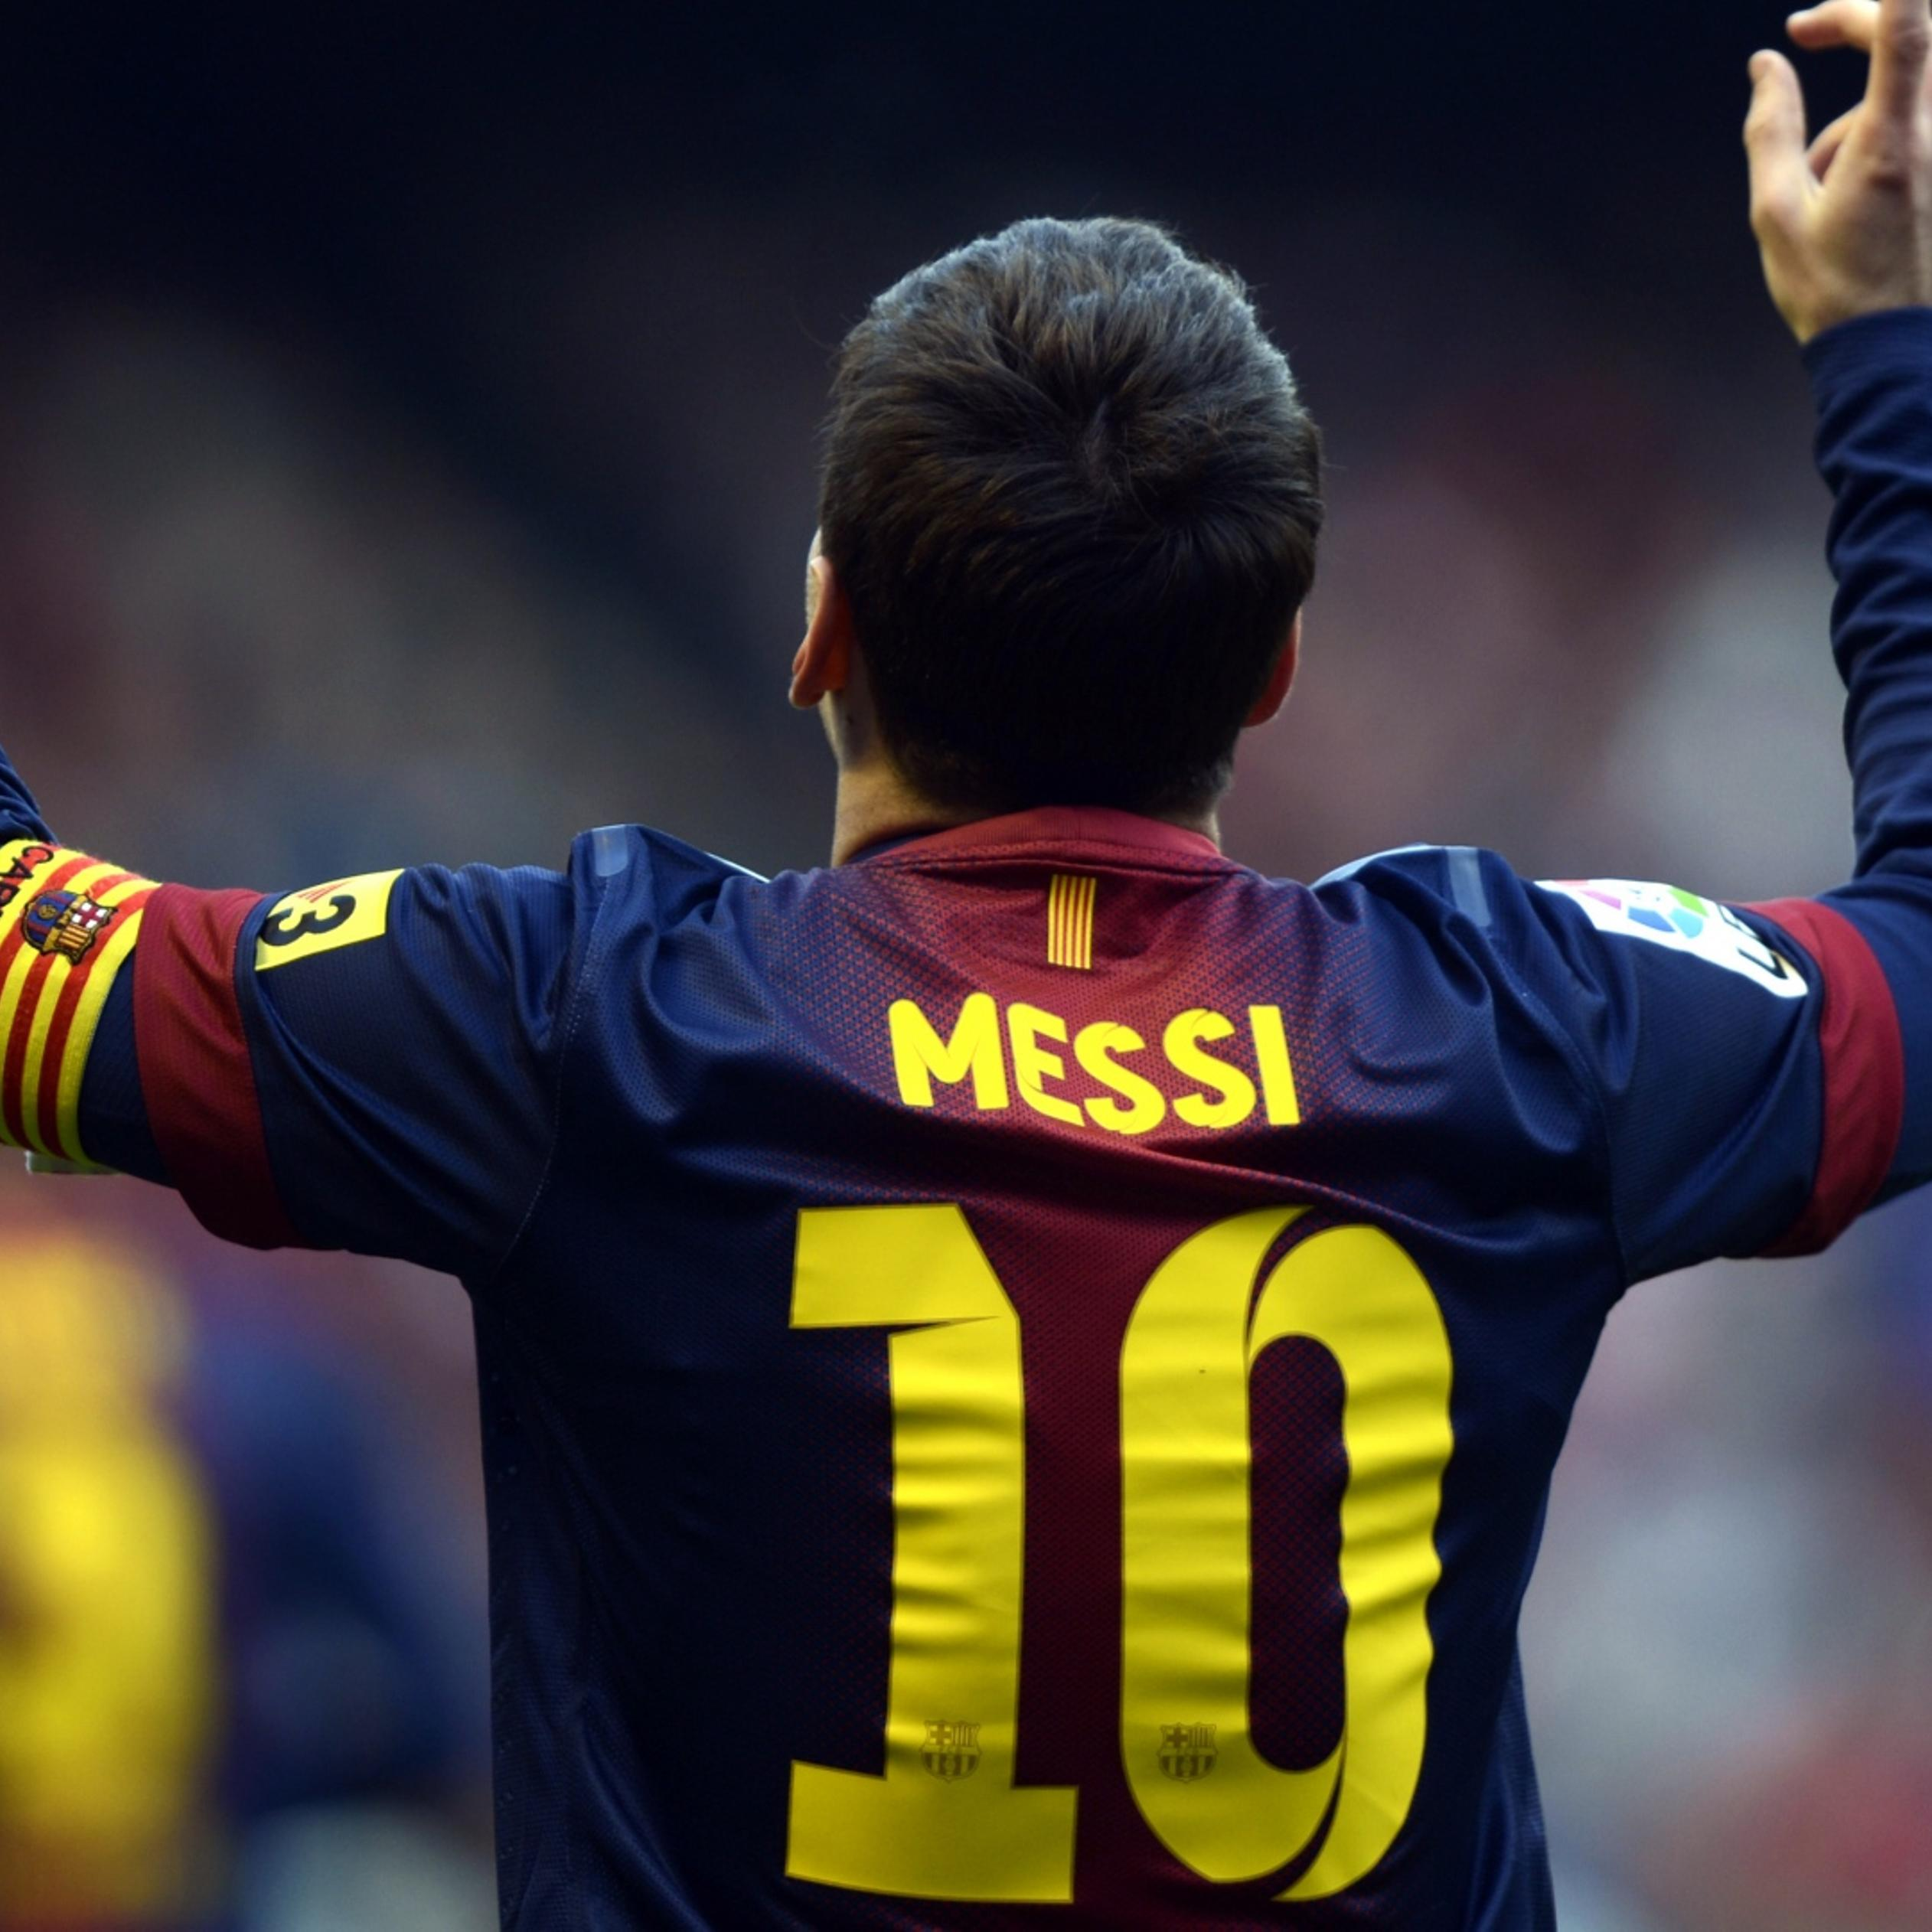 Lionel Messi On The Stadium T Shirt With Number 10